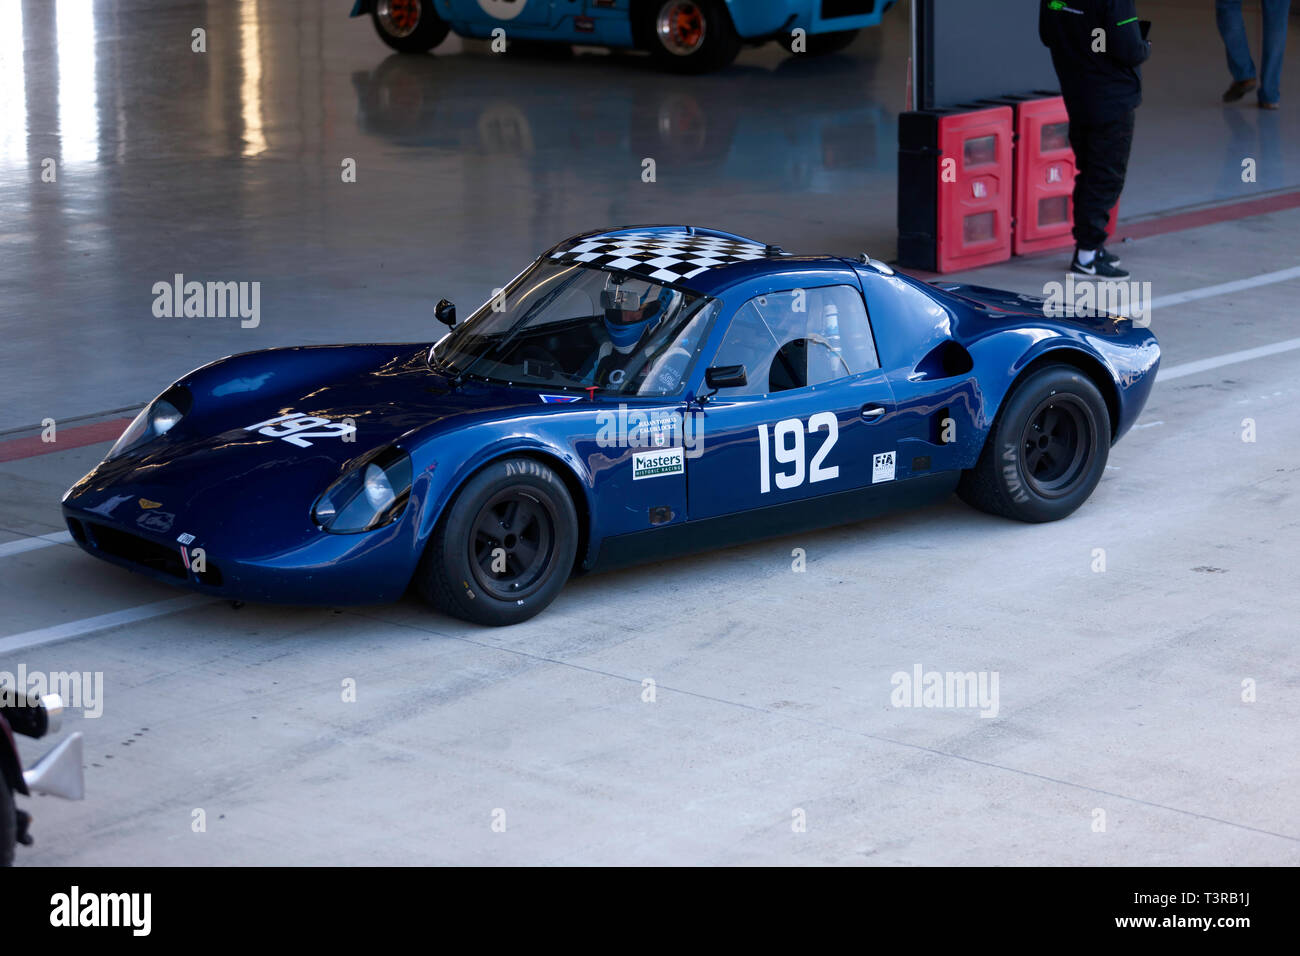 A Blue, 1968, Chevron B8 in the pit lane, during the Silverstone Classic Media Day 2019 - Stock Image